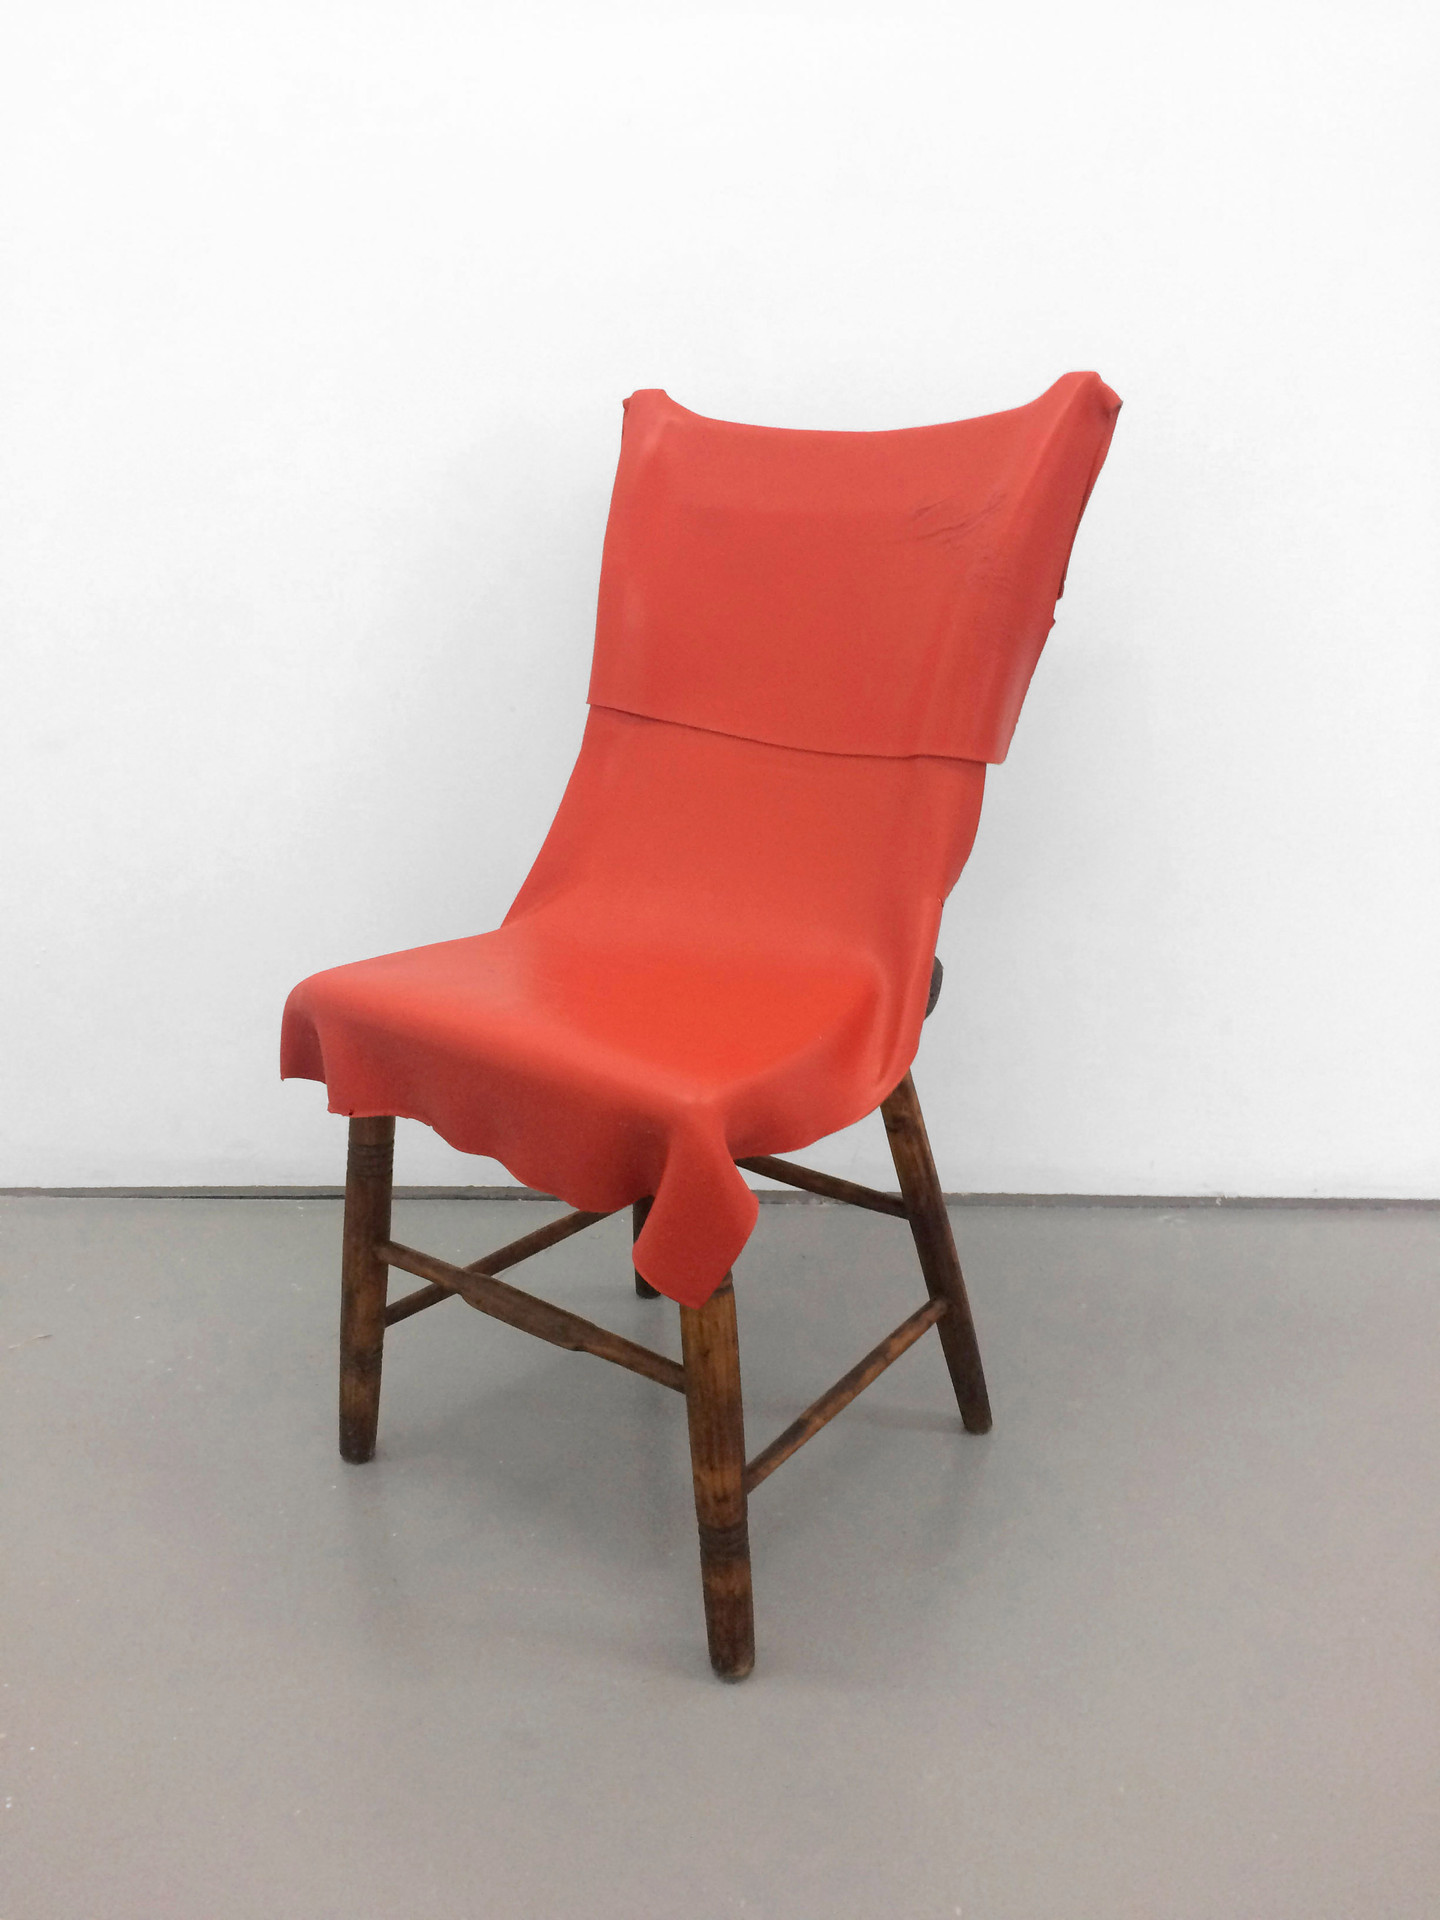 Paint on a chair, 2013. Acylic and wooden chair. 89 x 54 x 54 cm.